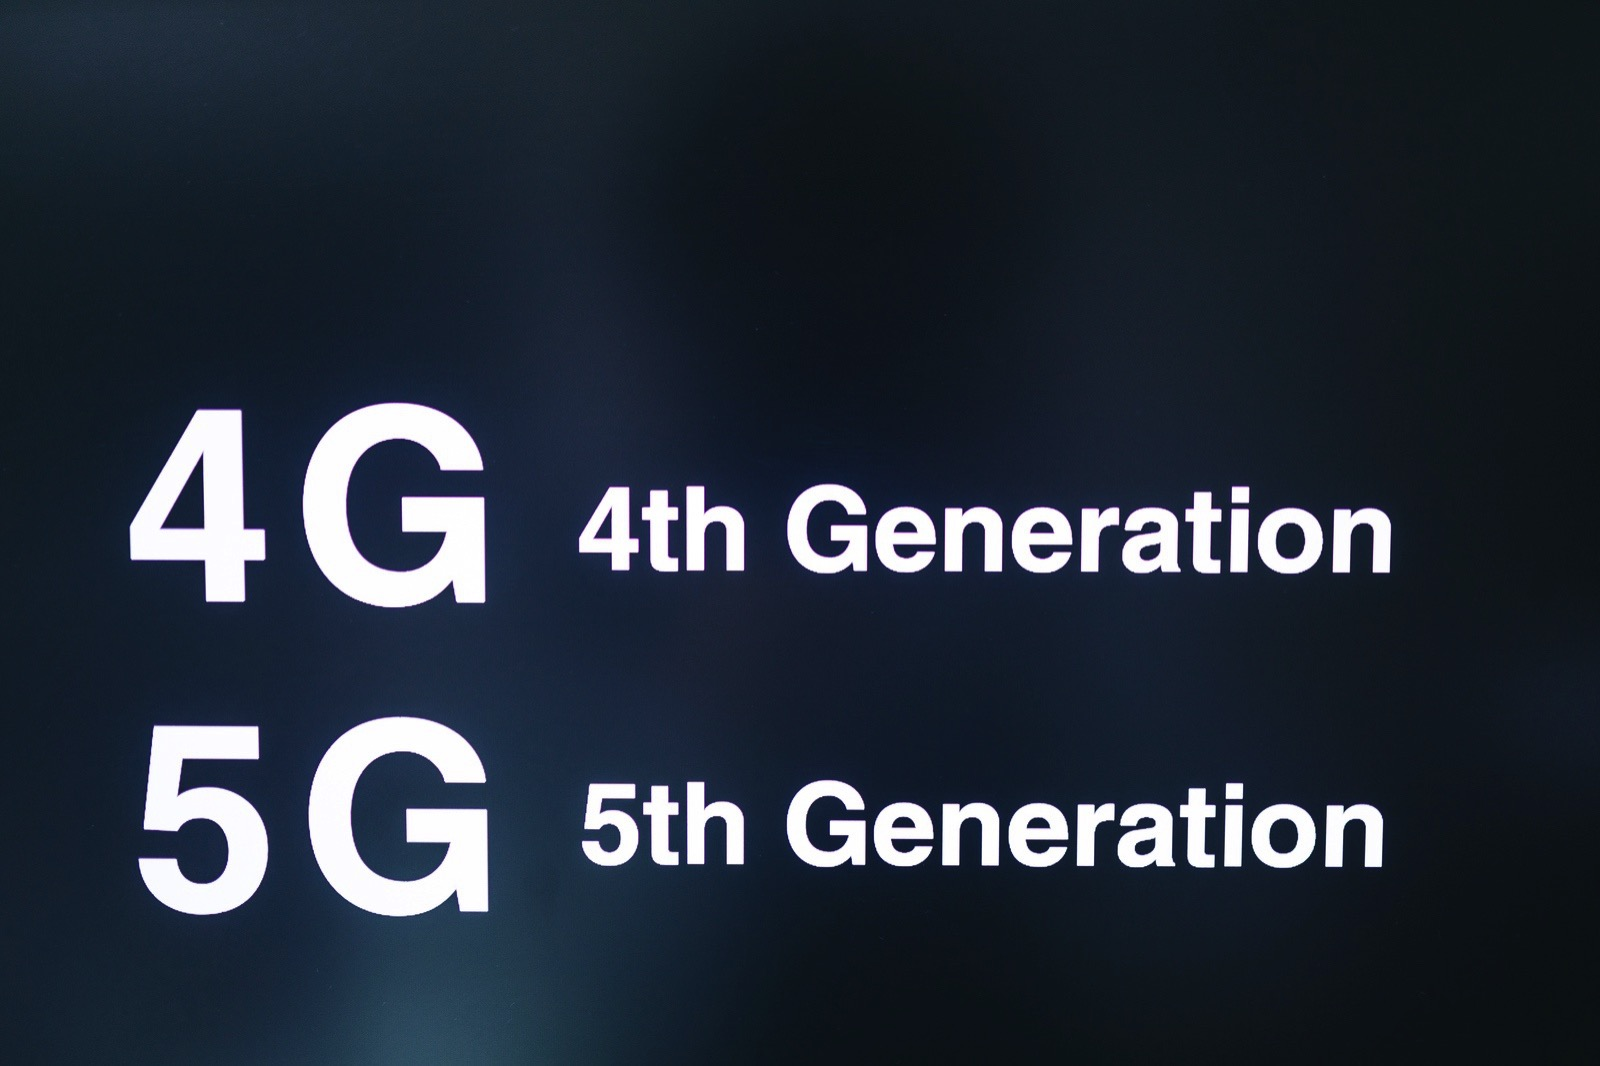 5G is 5th gen not 5GH 46